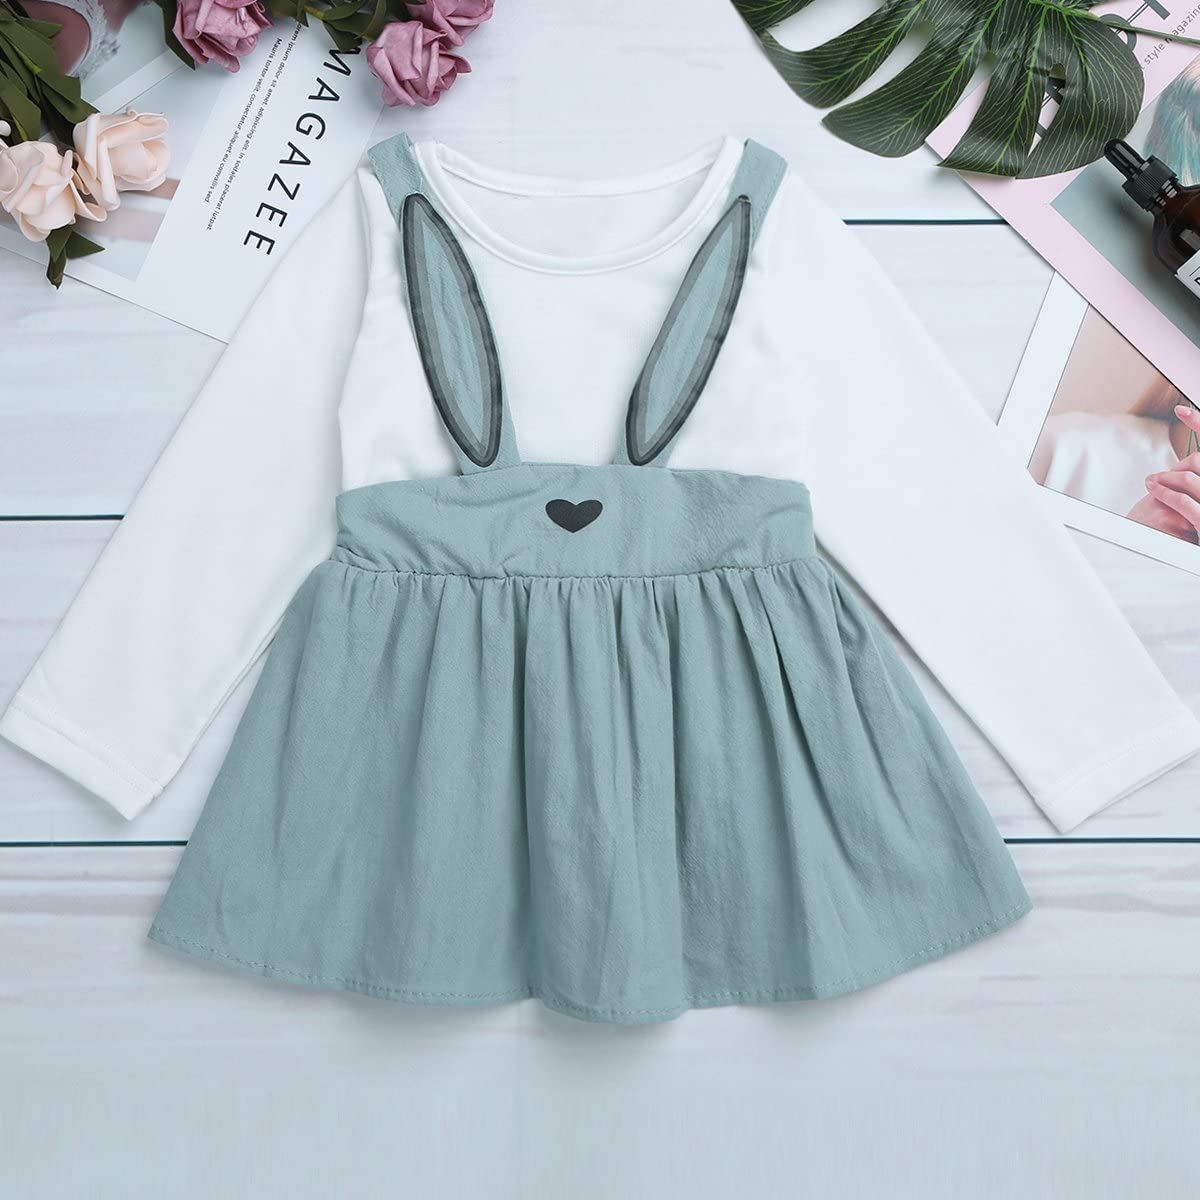 ACSUSS Infant Baby Girls Cotton Long Sleeves Suspenders Skirts Rabbit Ear Tunic Dress Spring Autumn Casual Daily Wear